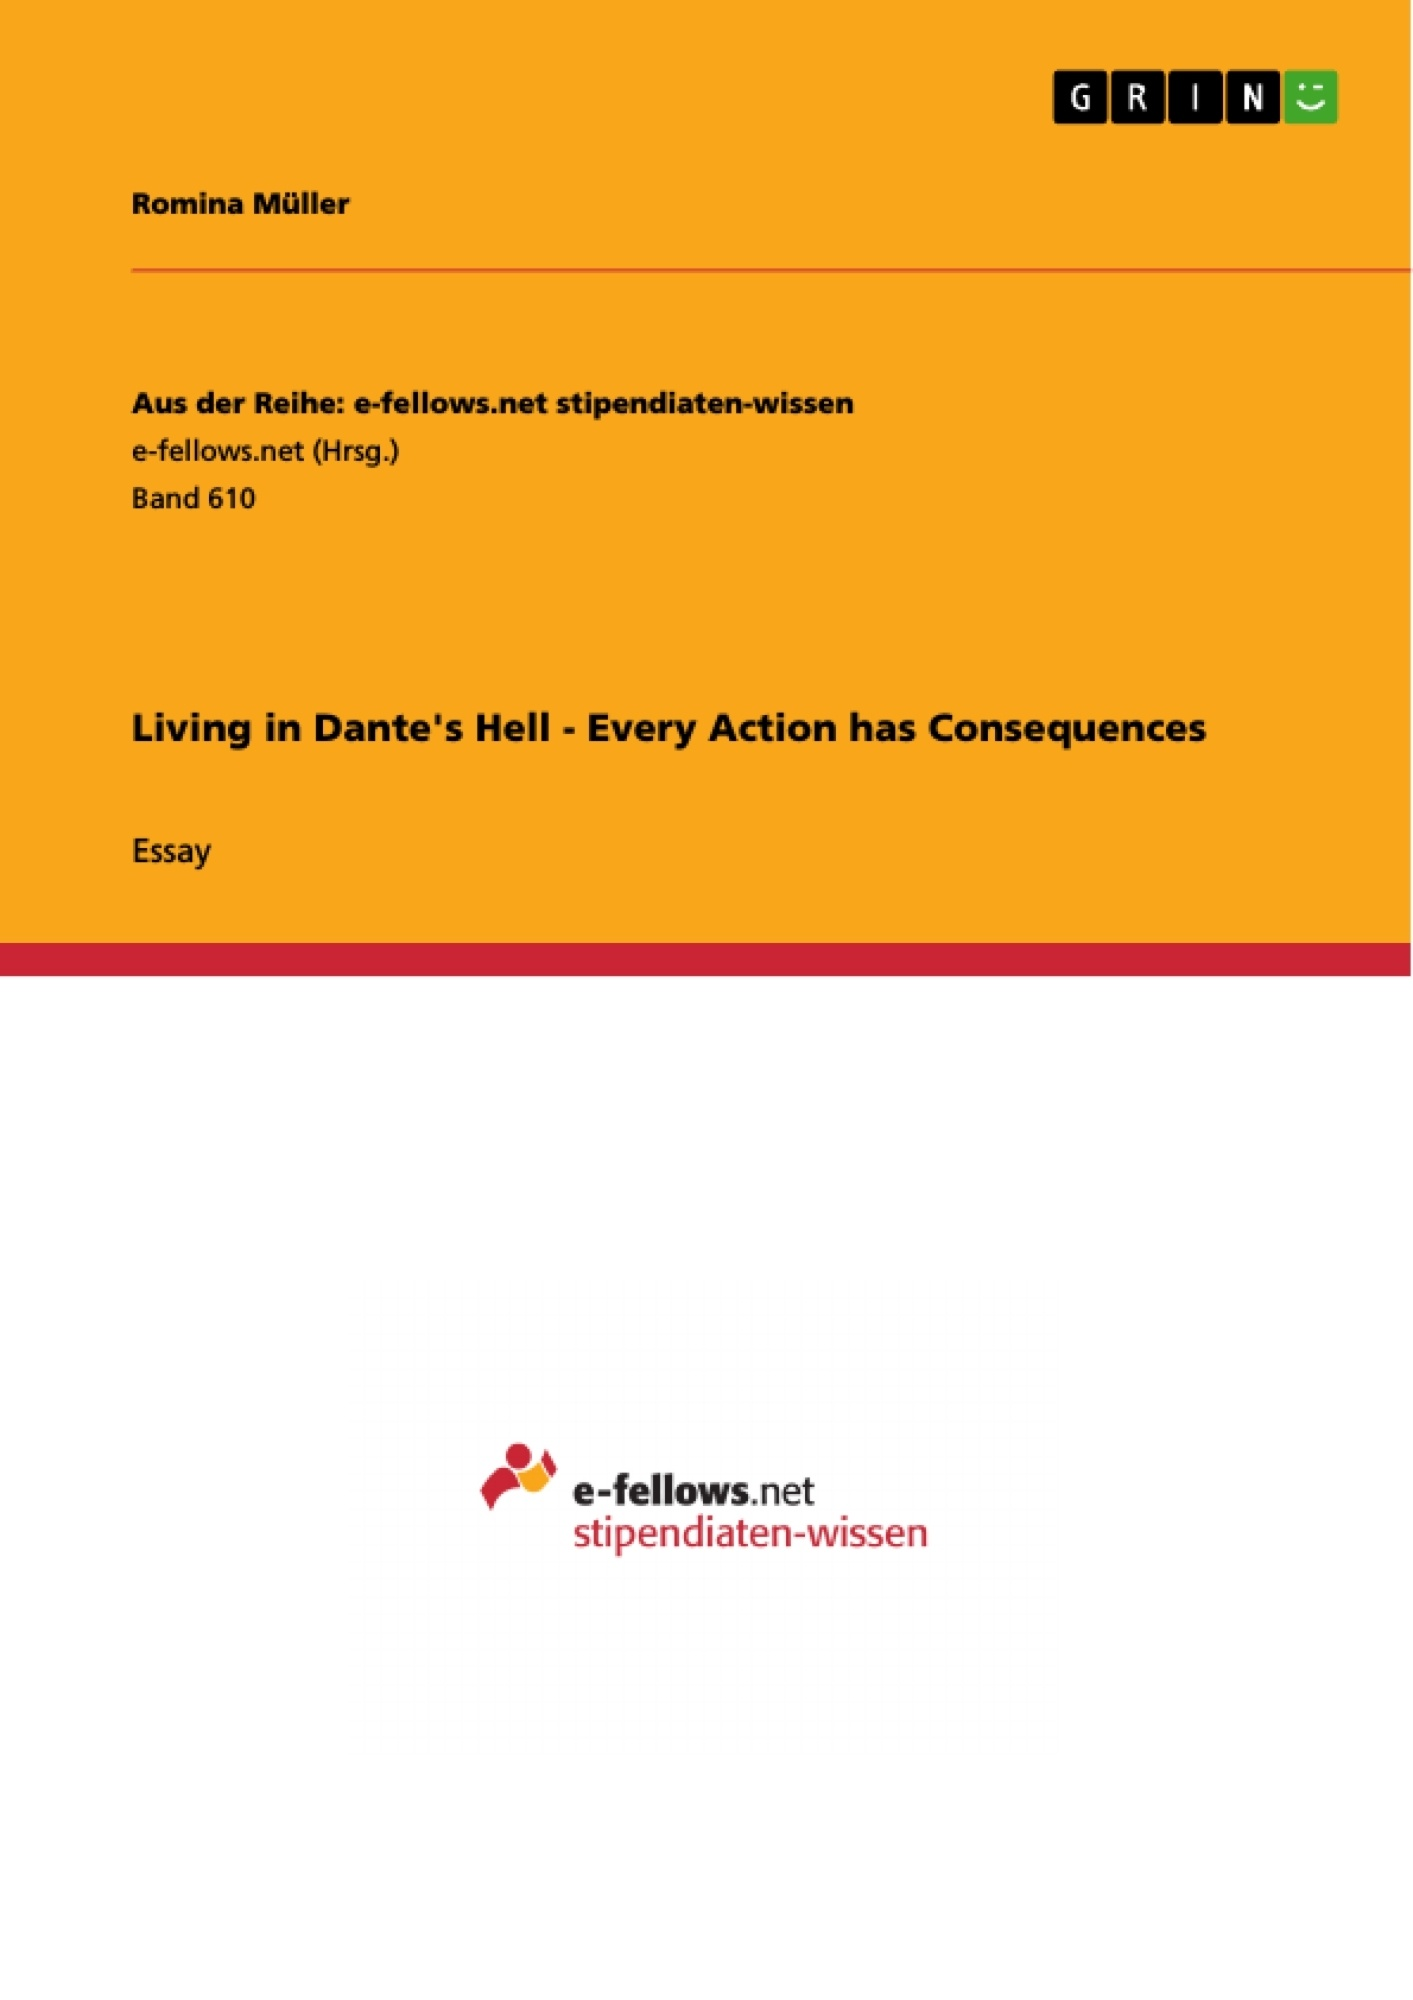 Title: Living in Dante's Hell - Every Action has Consequences